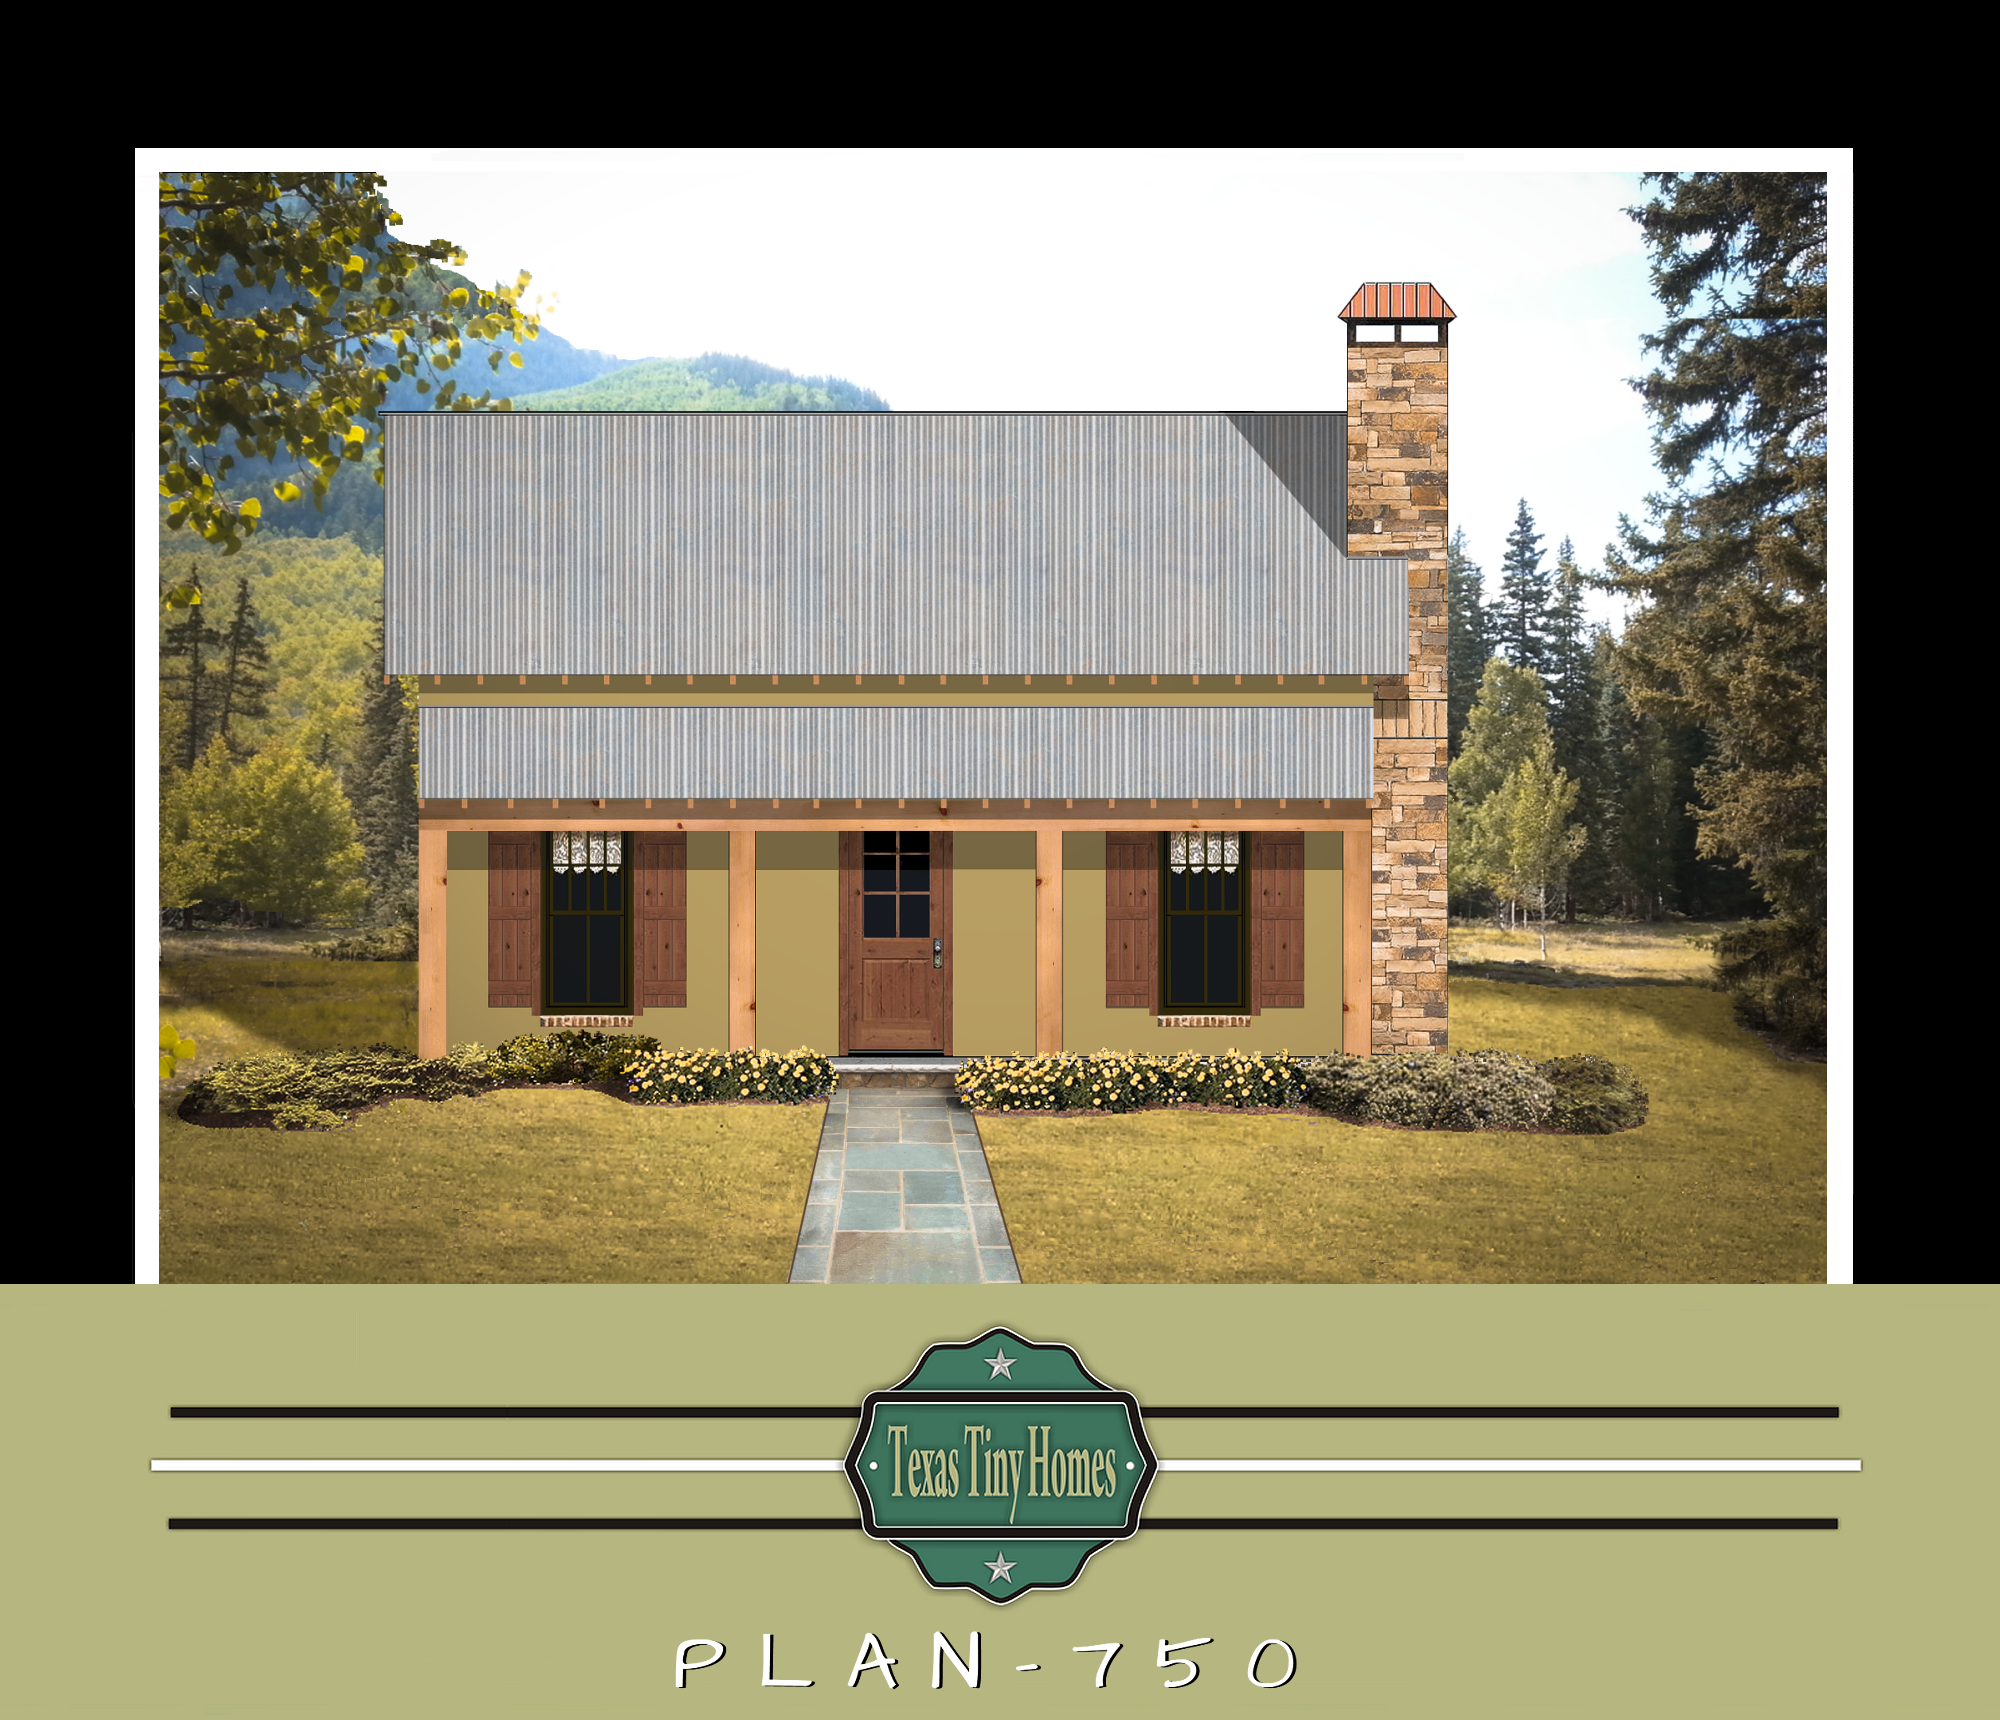 Texas tiny homes plan 750 for Tiny house floor plans for sale